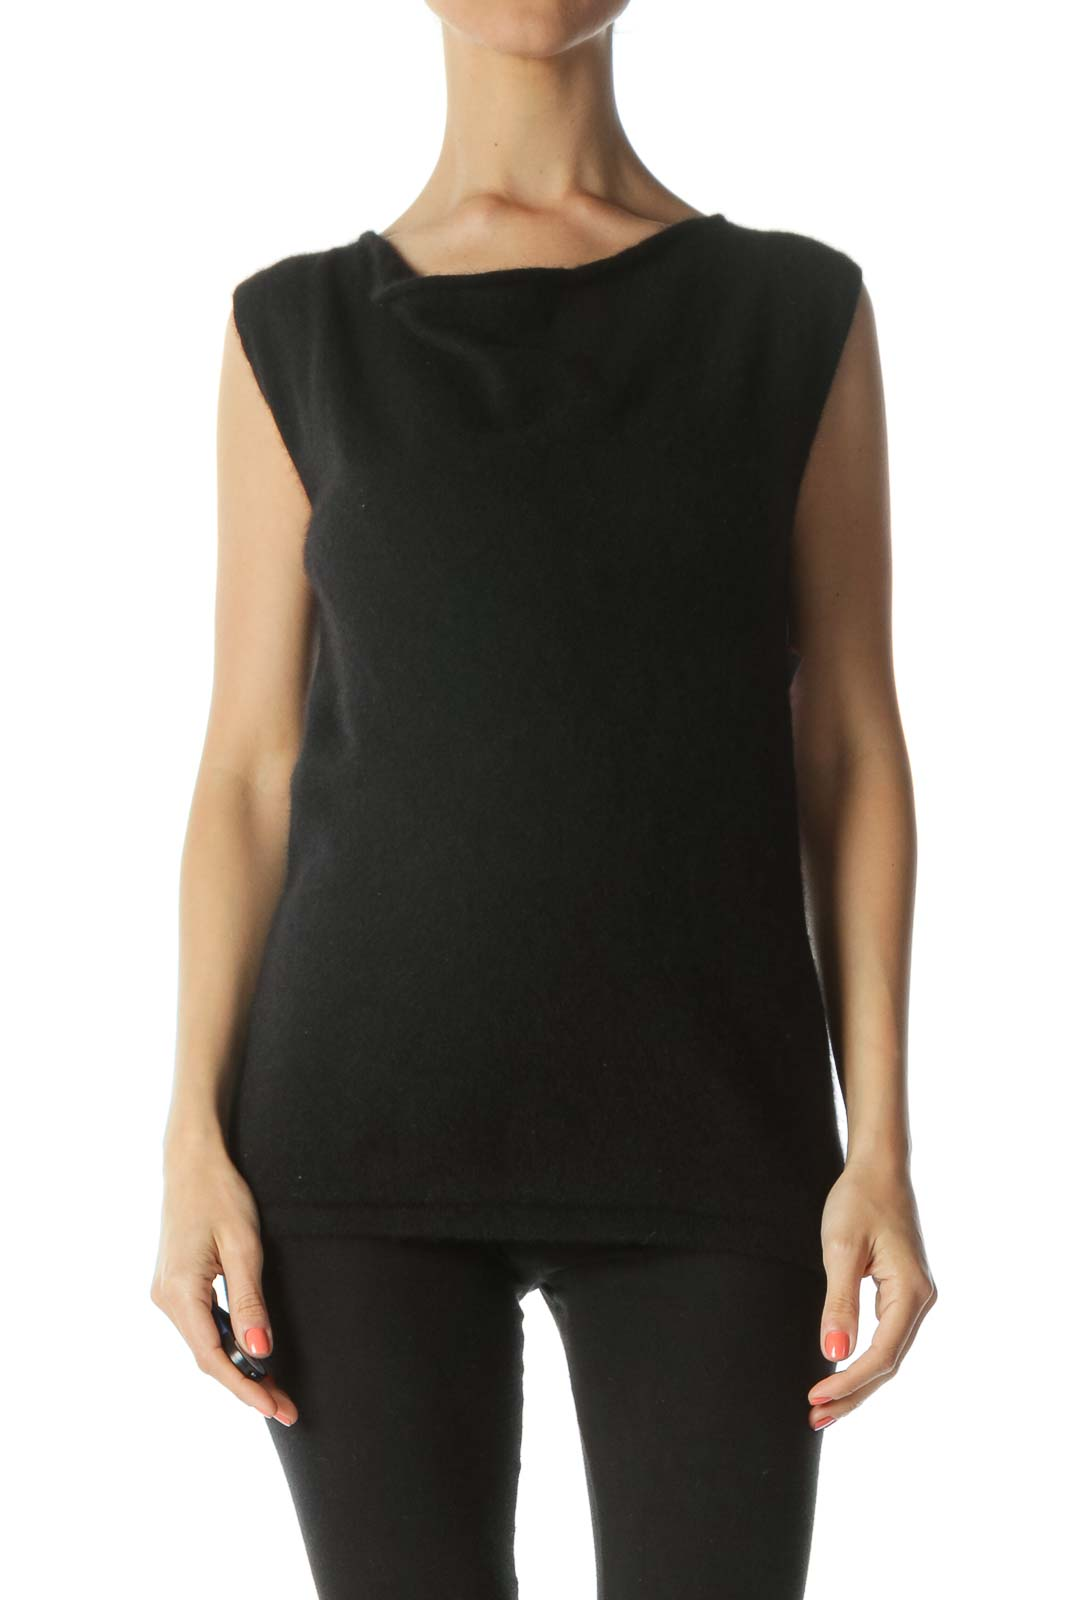 Black Cashmere Soft Cowl-Neck Sleeveless Tank Top Front